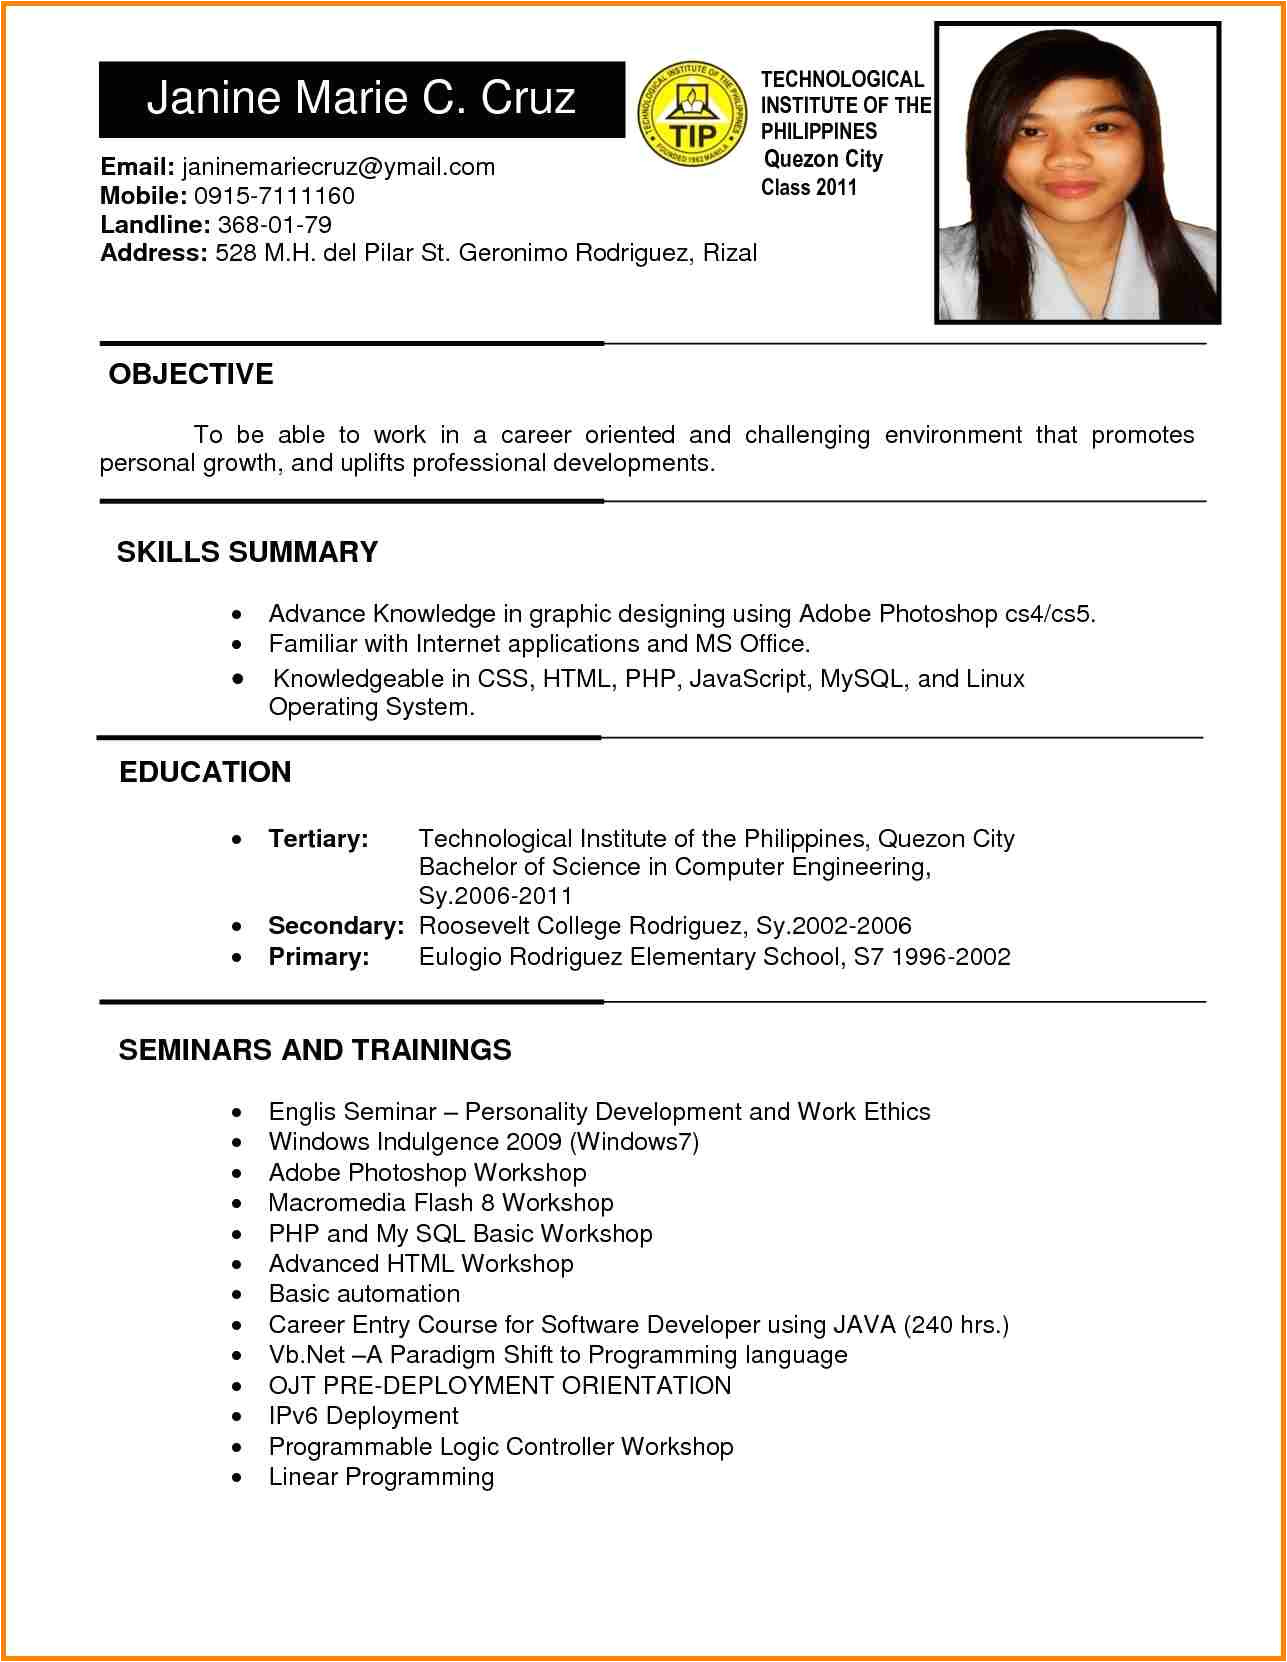 Resume format for Government Job Philippines 6 Example Of Filipino Resume format Penn Working Papers